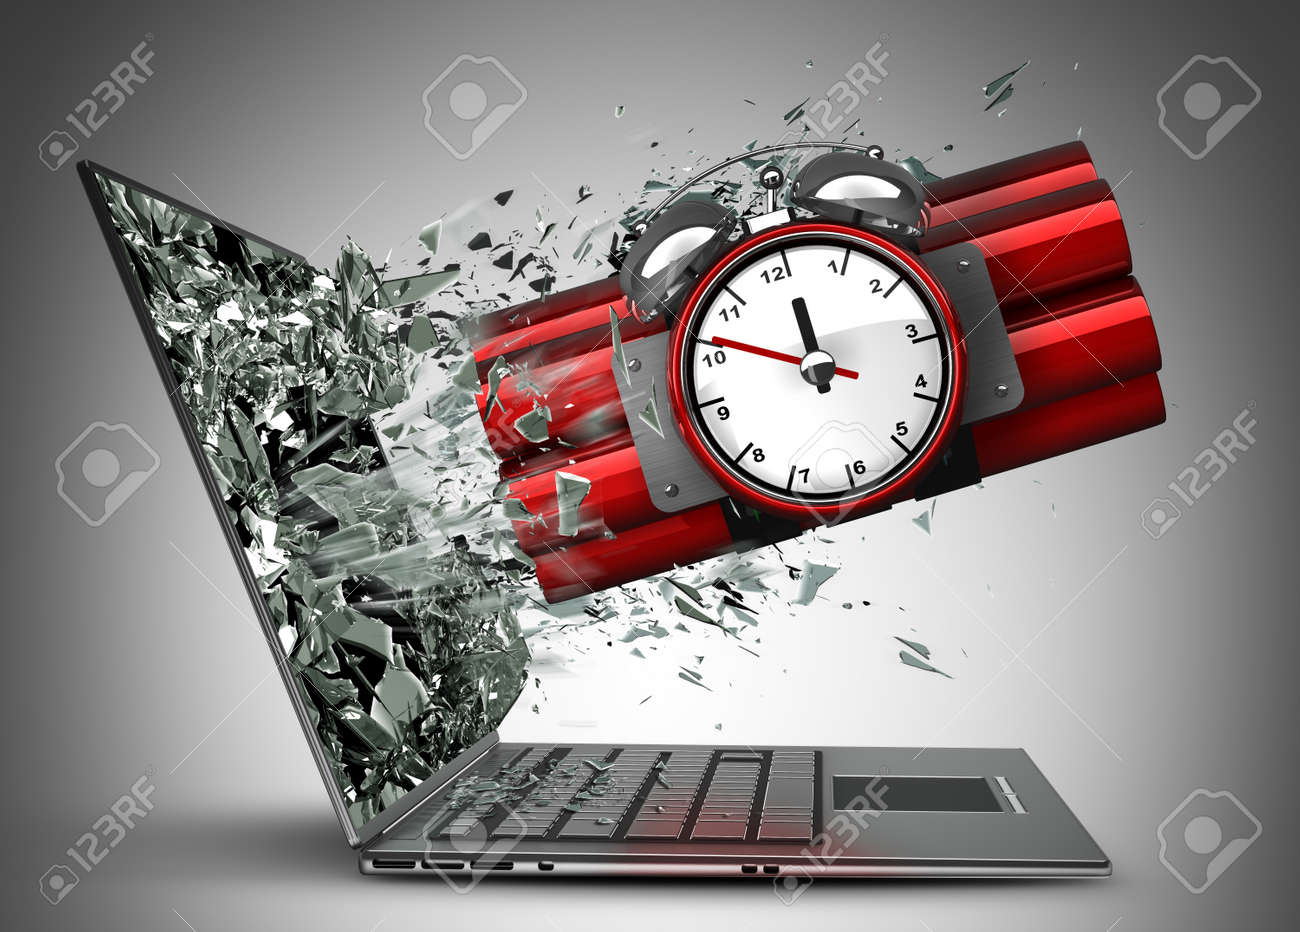 Bomb with clock timer exit by a monitor of laptop screen  High resolution 3d Stock Photo - 22253055